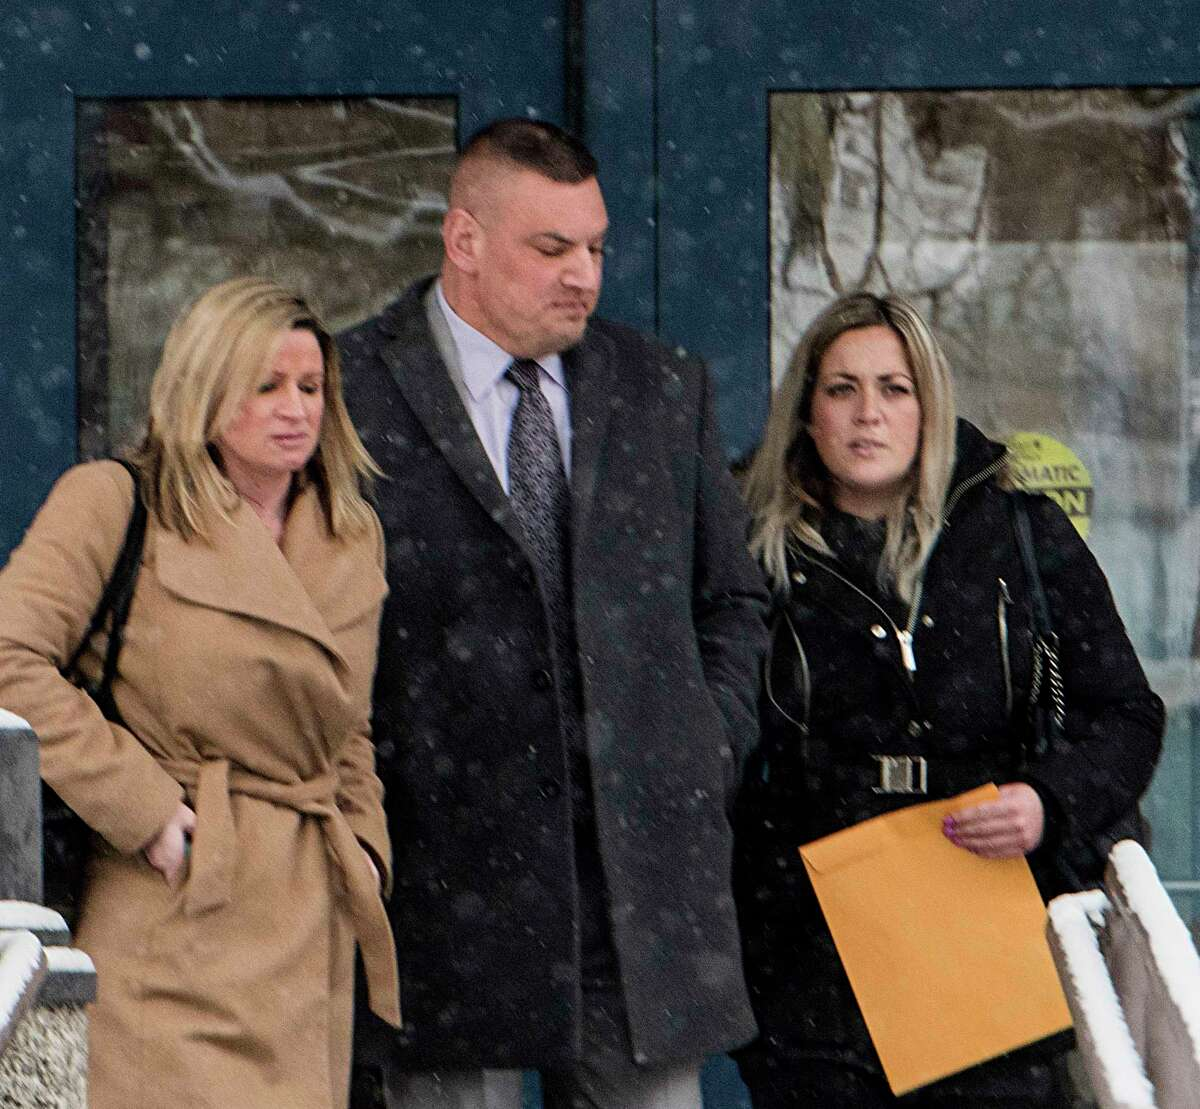 Schenectady Police Lt. Mark McCracken, center, leaves City Court with his attorney Rebecca Bauscher, left, and girlfriend Megan Johnson, right, after his appearance in court on Tuesday, Jan 16, 2018, in Schenectady, N.Y. (Skip Dickstein/ Times Union)